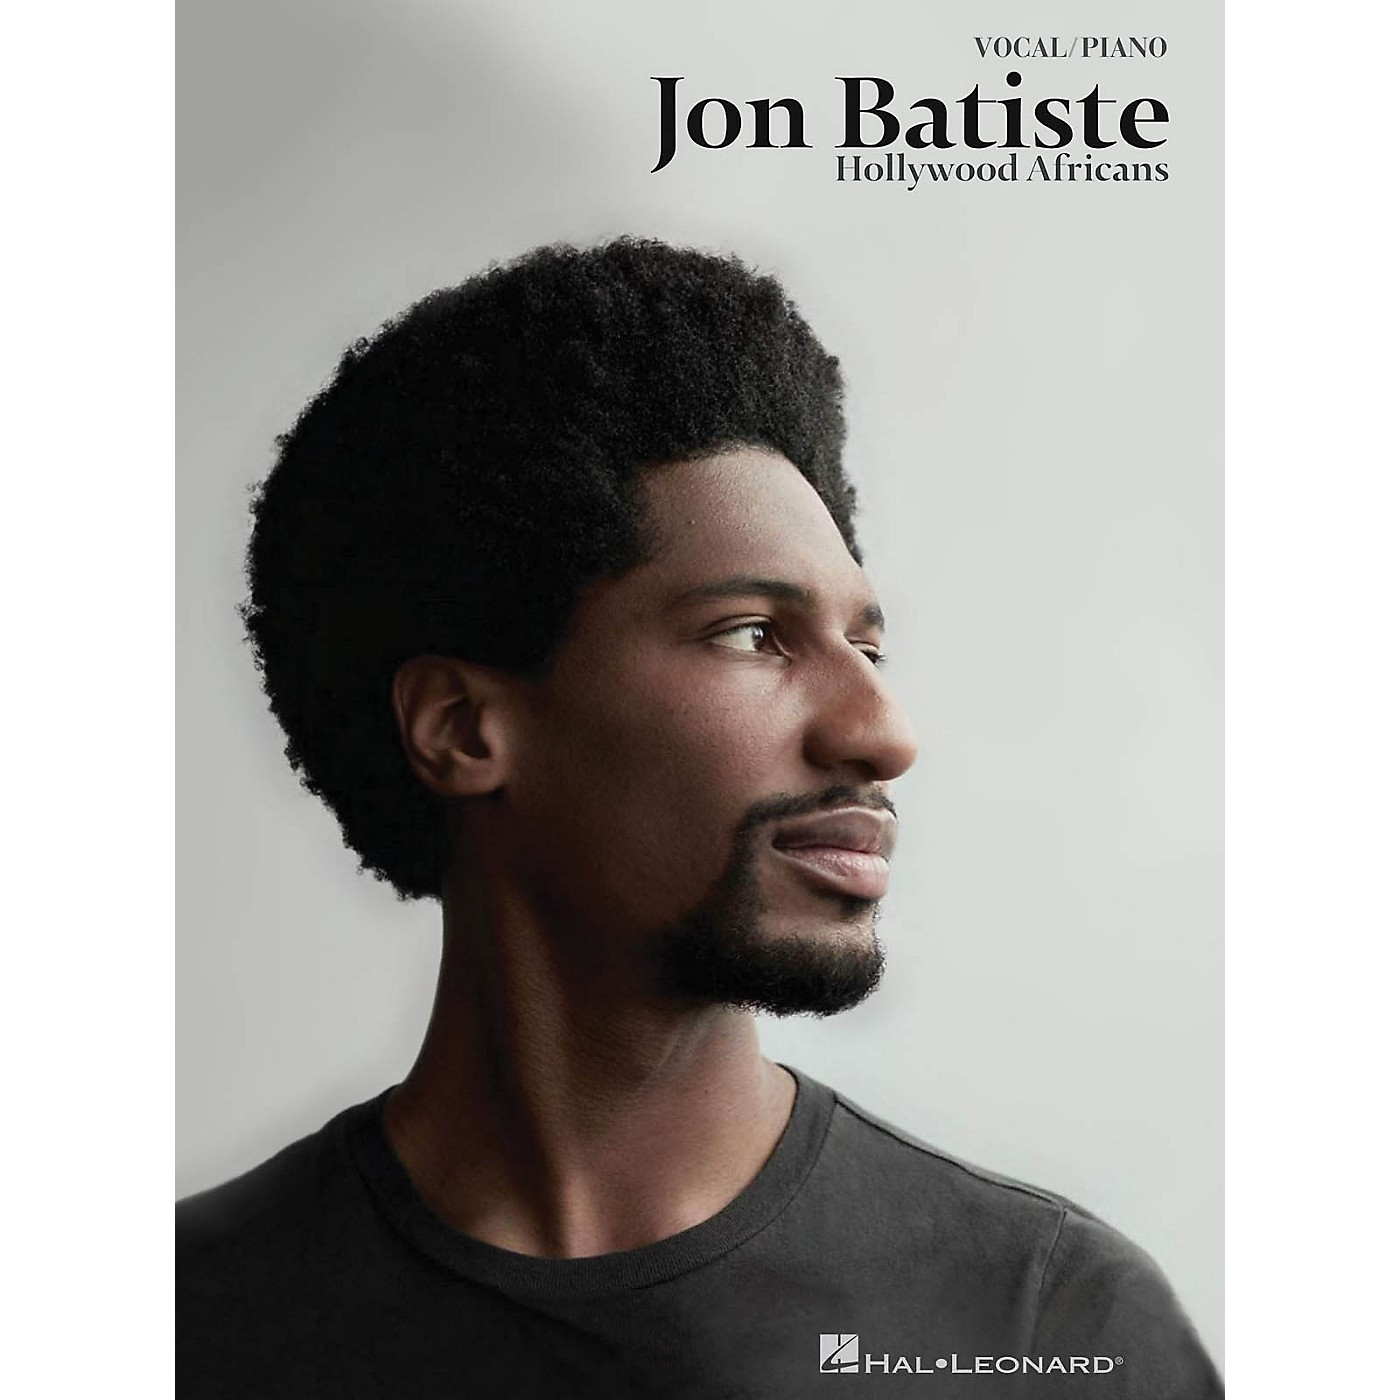 Hal Leonard Jon Batiste - Hollywood Africans Piano Solo Songbook thumbnail